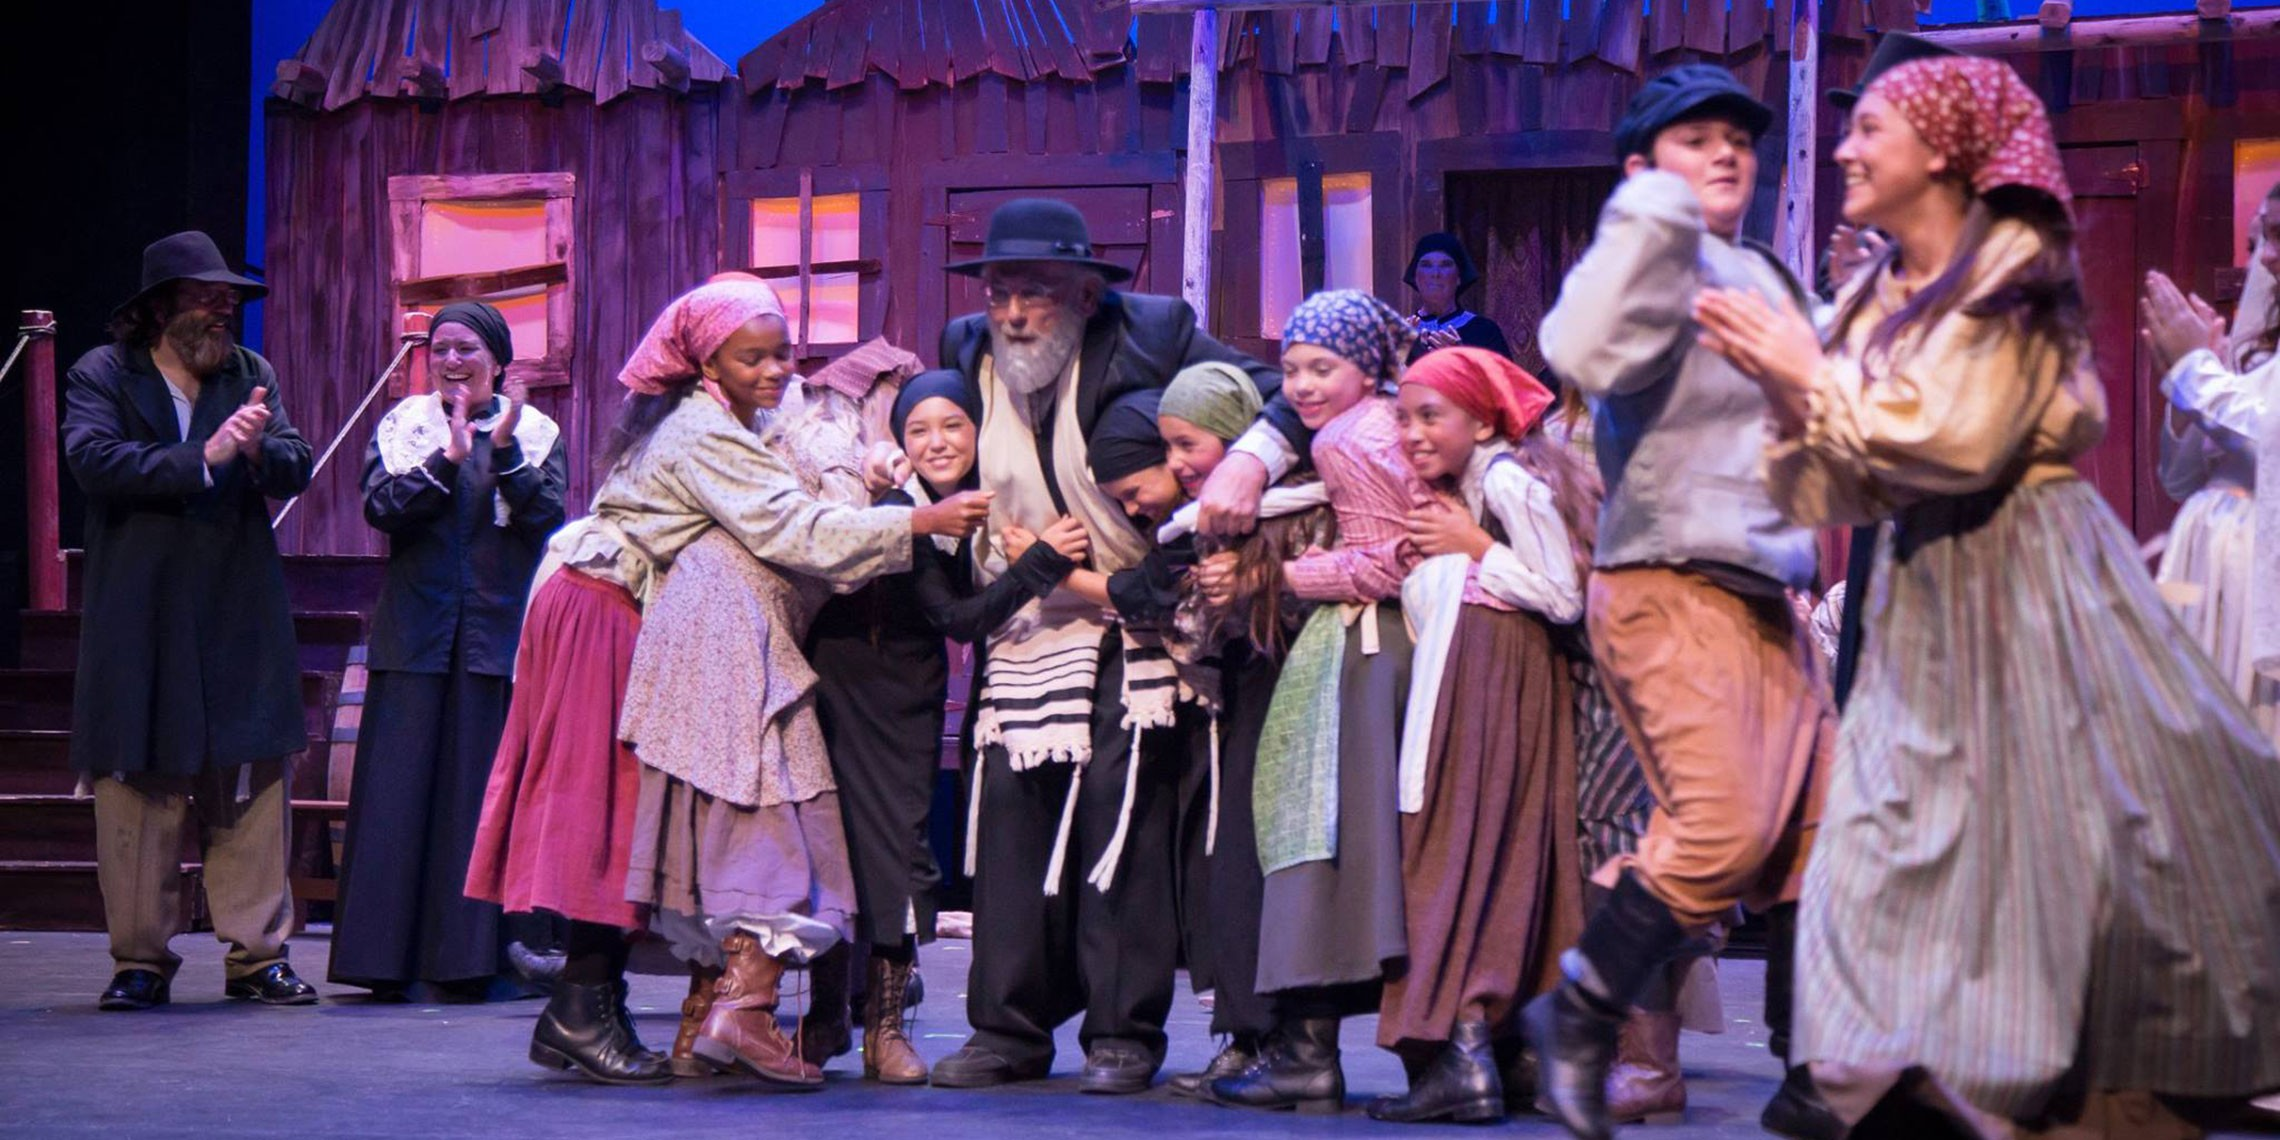 Old Town Temecula Community Theater presents Fiddler on the Roof